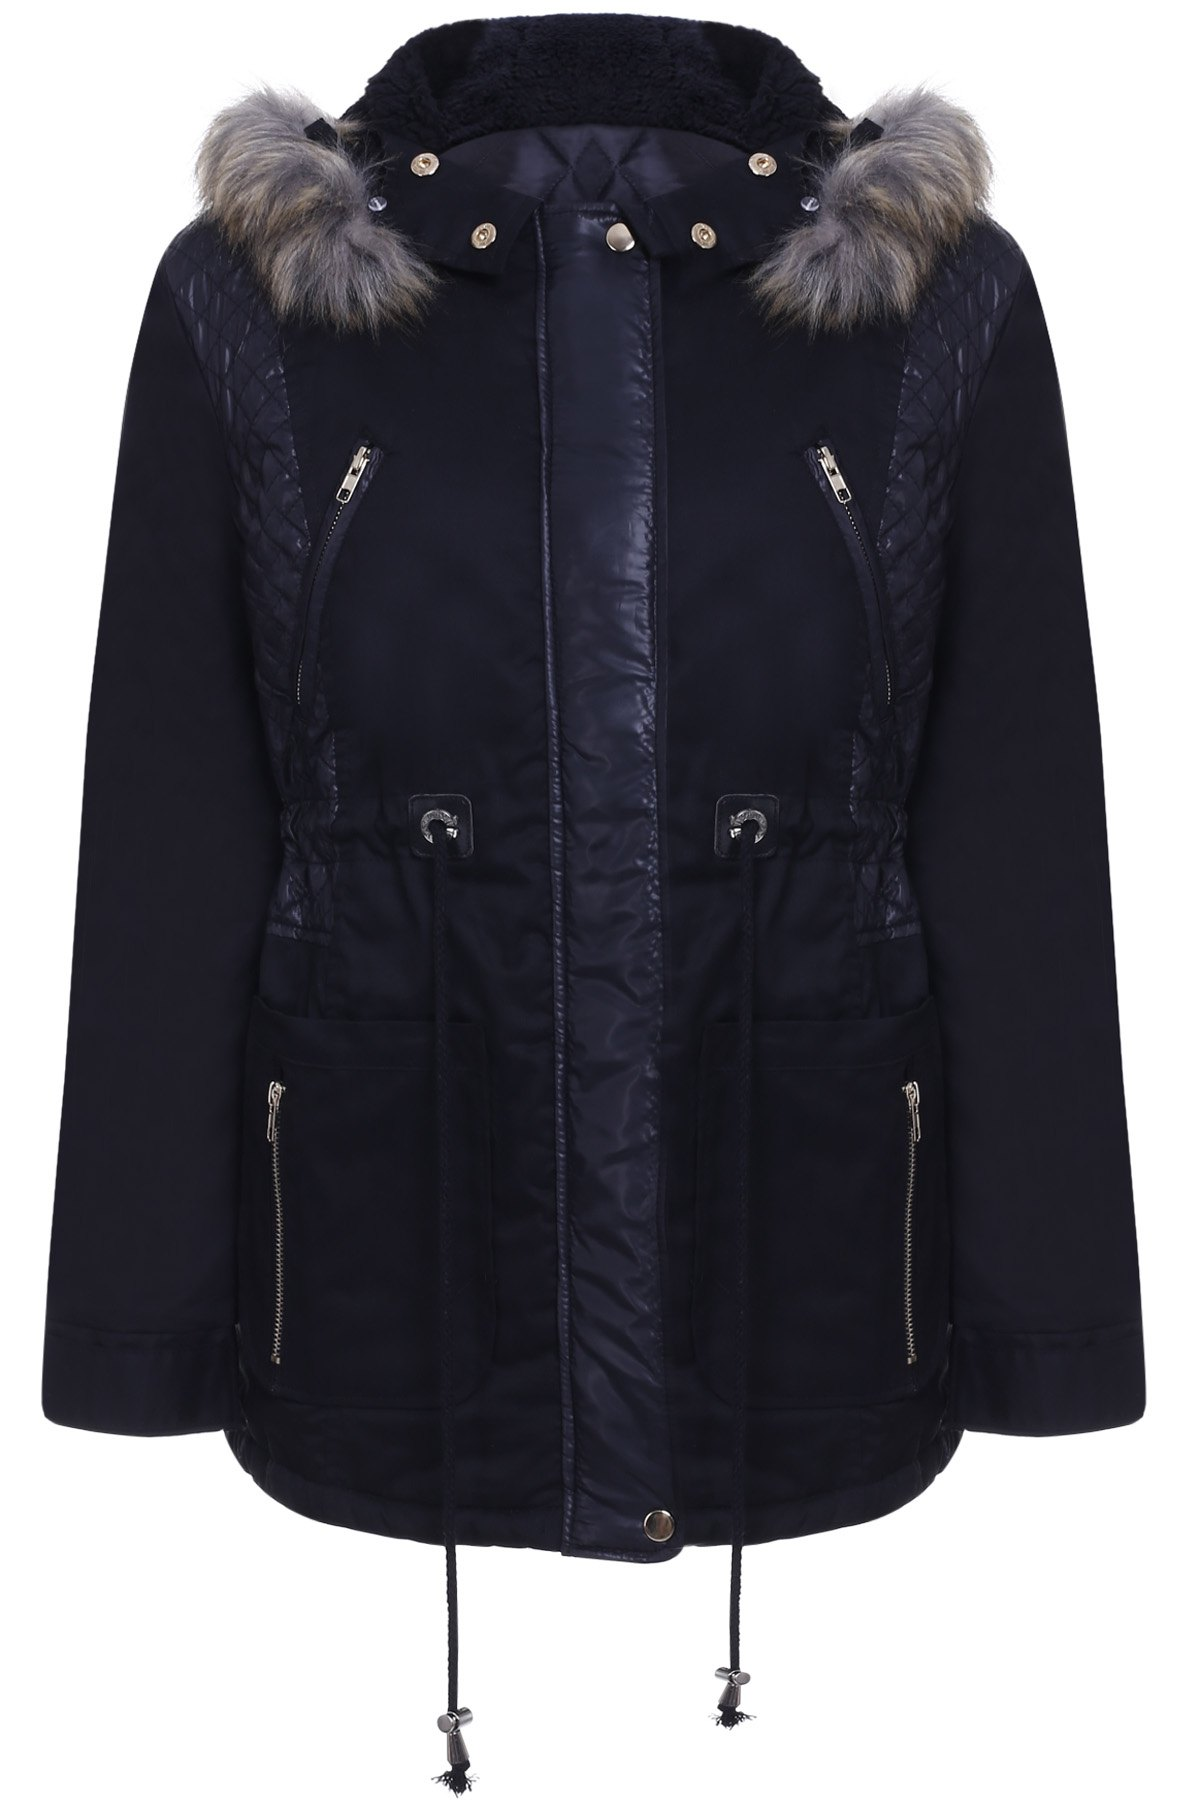 Faux Fur Hooded Long Sleeve PU Splicing Thick Coat For Women